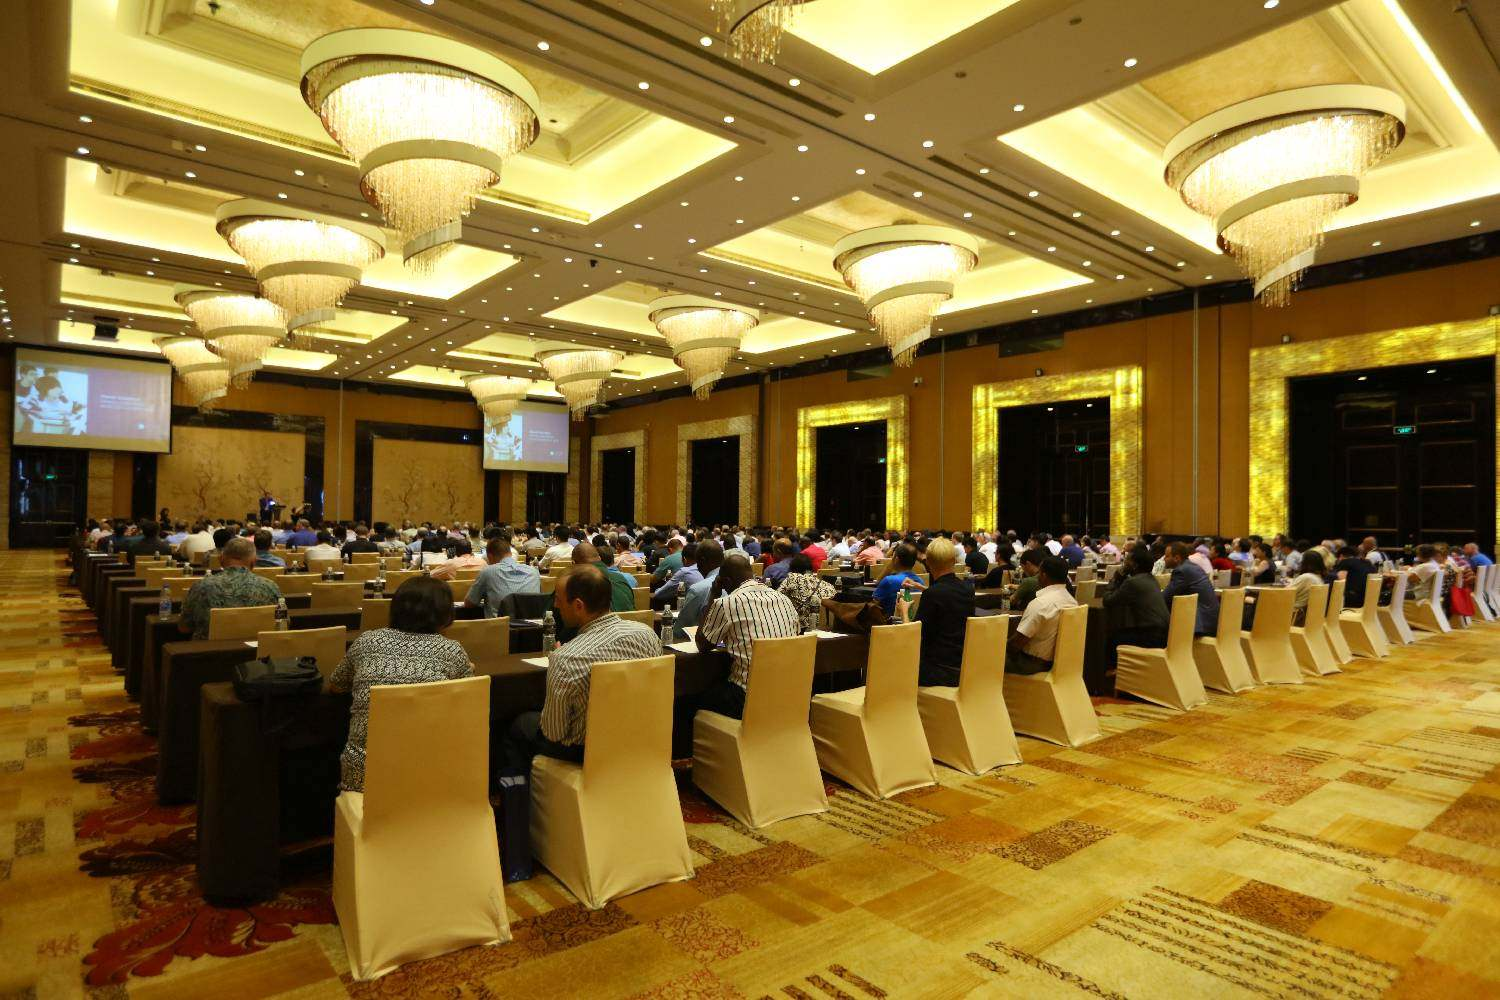 Attendees at Dipont's annual conference in Wuxi